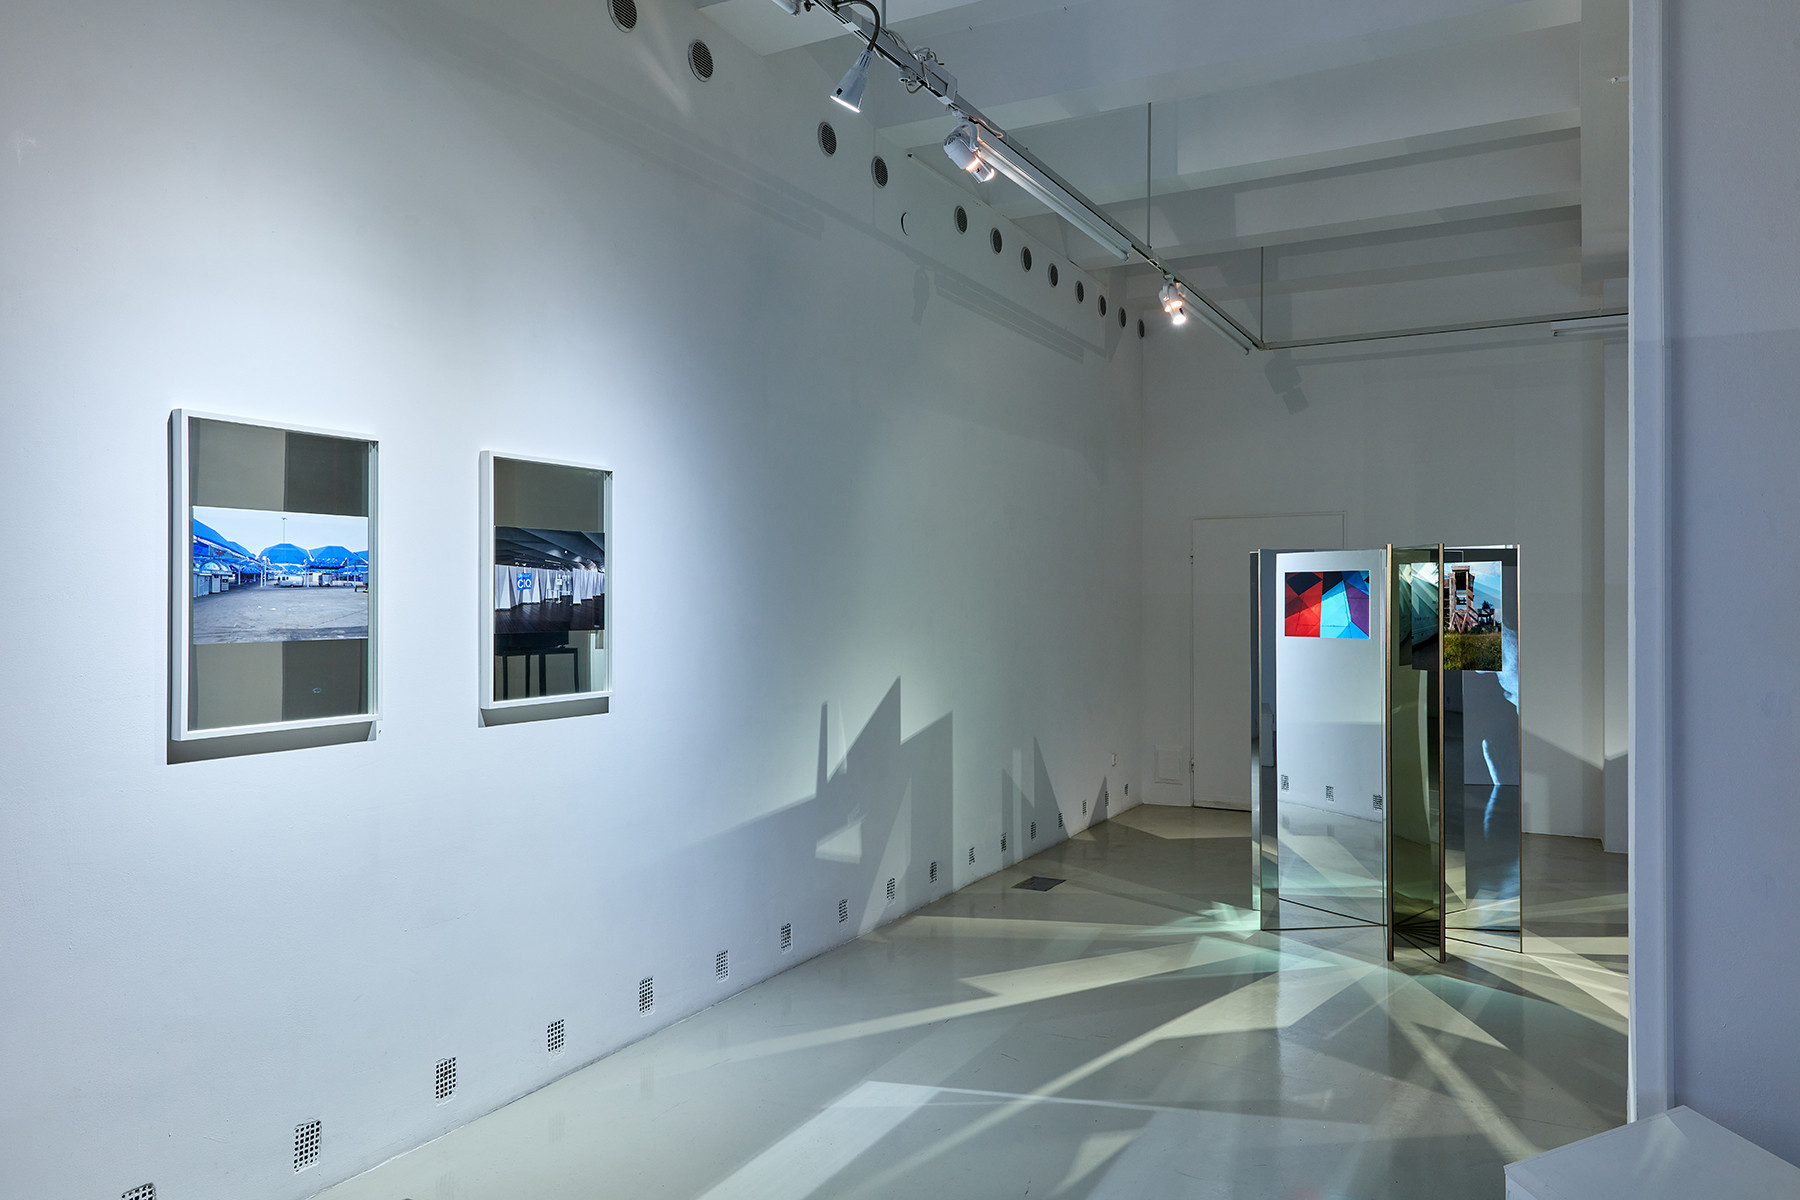 Exhibition view with the works of Andreas Fogarasi | photo: Dávid Biró